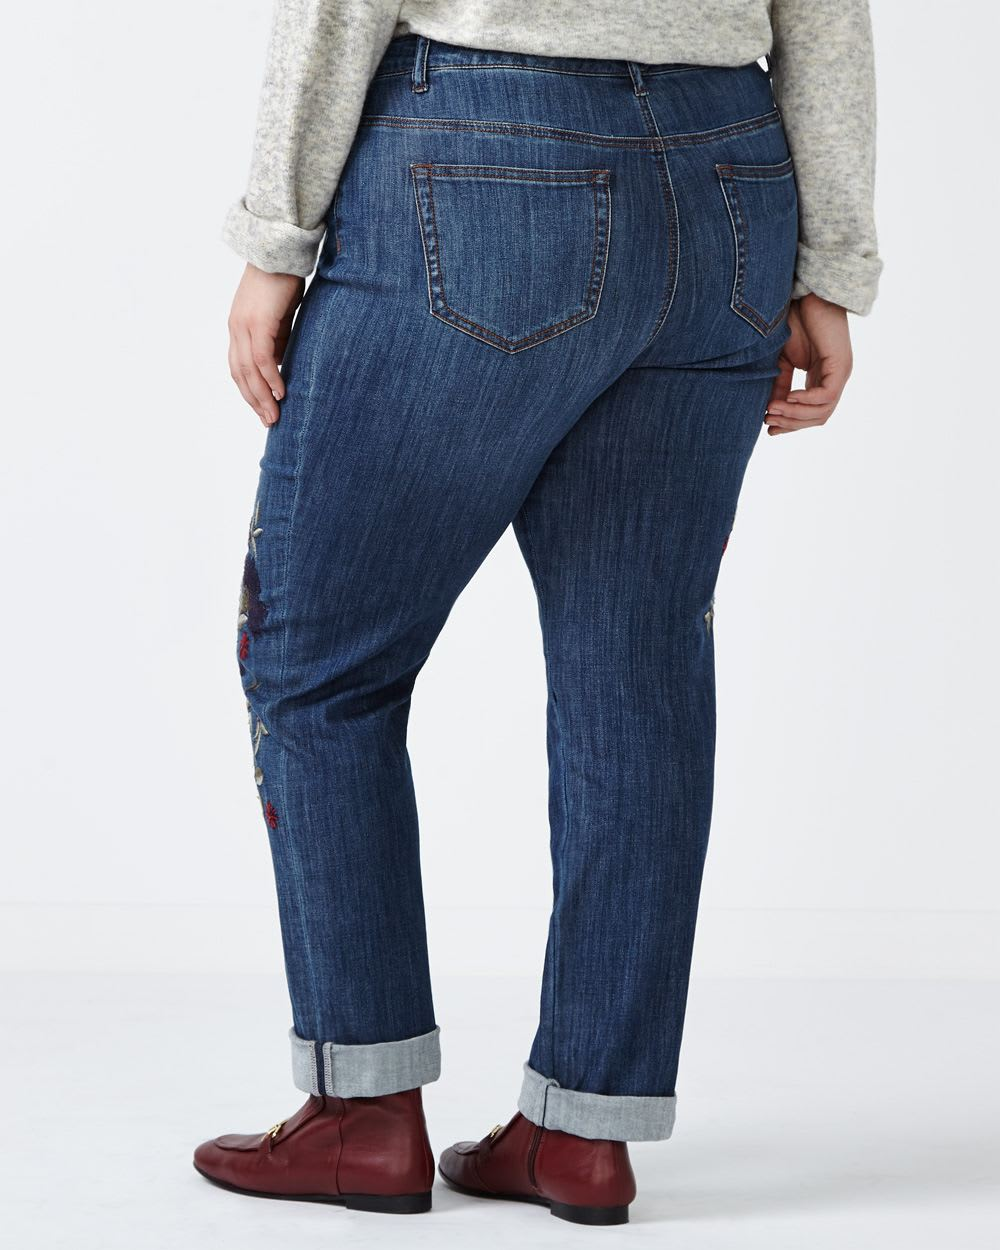 d/c JEANS Slightly Curvy Fit Embroidered Straight Leg Jean